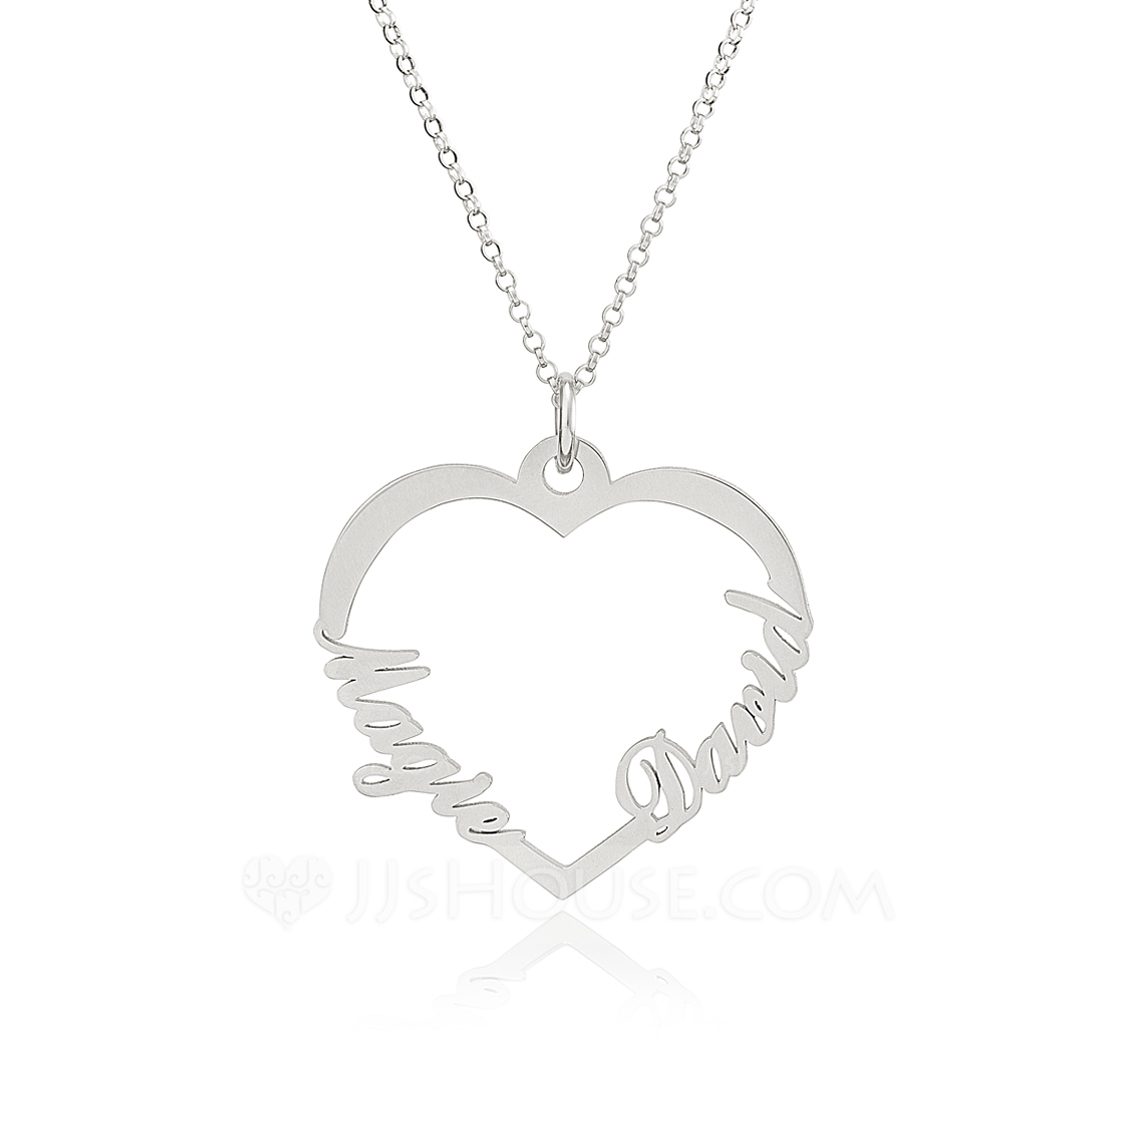 Custom Sterling Silver Two Name Necklace Heart Necklace - Birthday Gifts Mother's Day Gifts